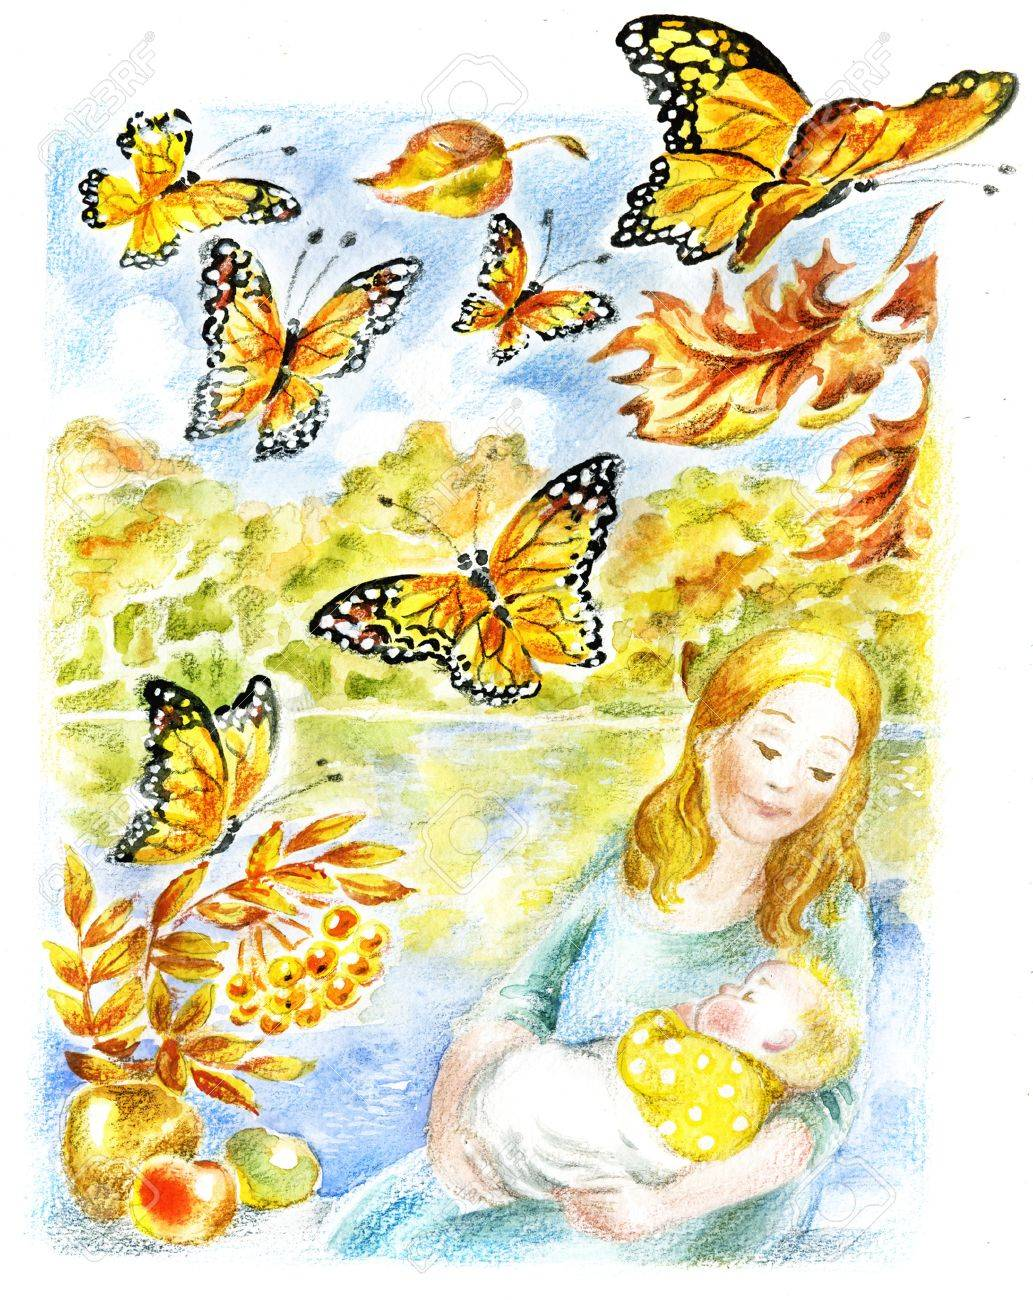 Mother and baby. Mother holds a baby in her arms against autumnal picturesque scenery with flying butterflies and yellow-red leaves Stock Photo - 18178623